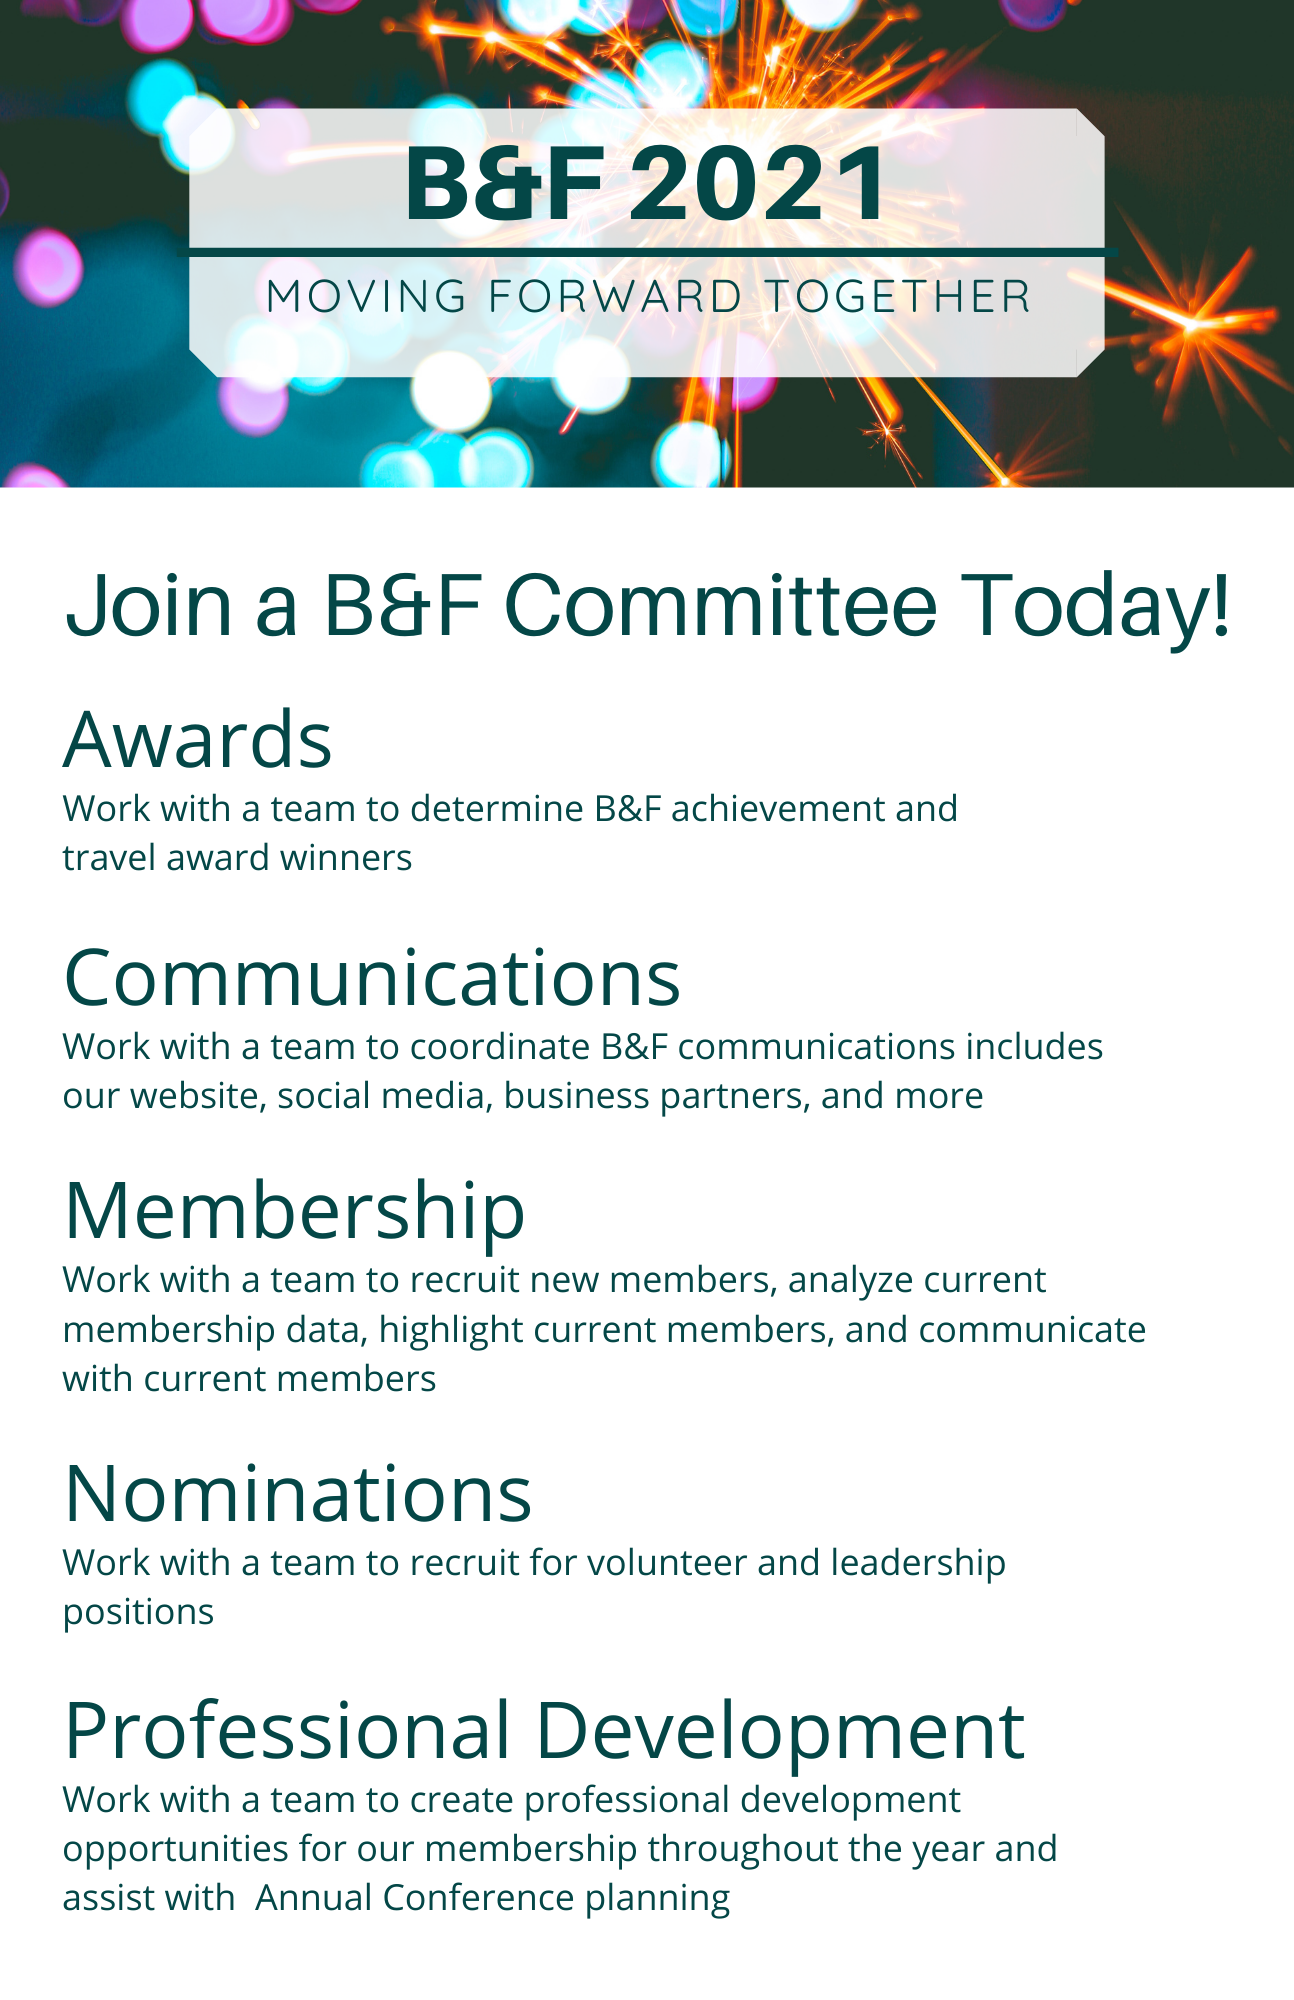 List of Committees: Awards, Communications, Membership, Nominations, Professional Development